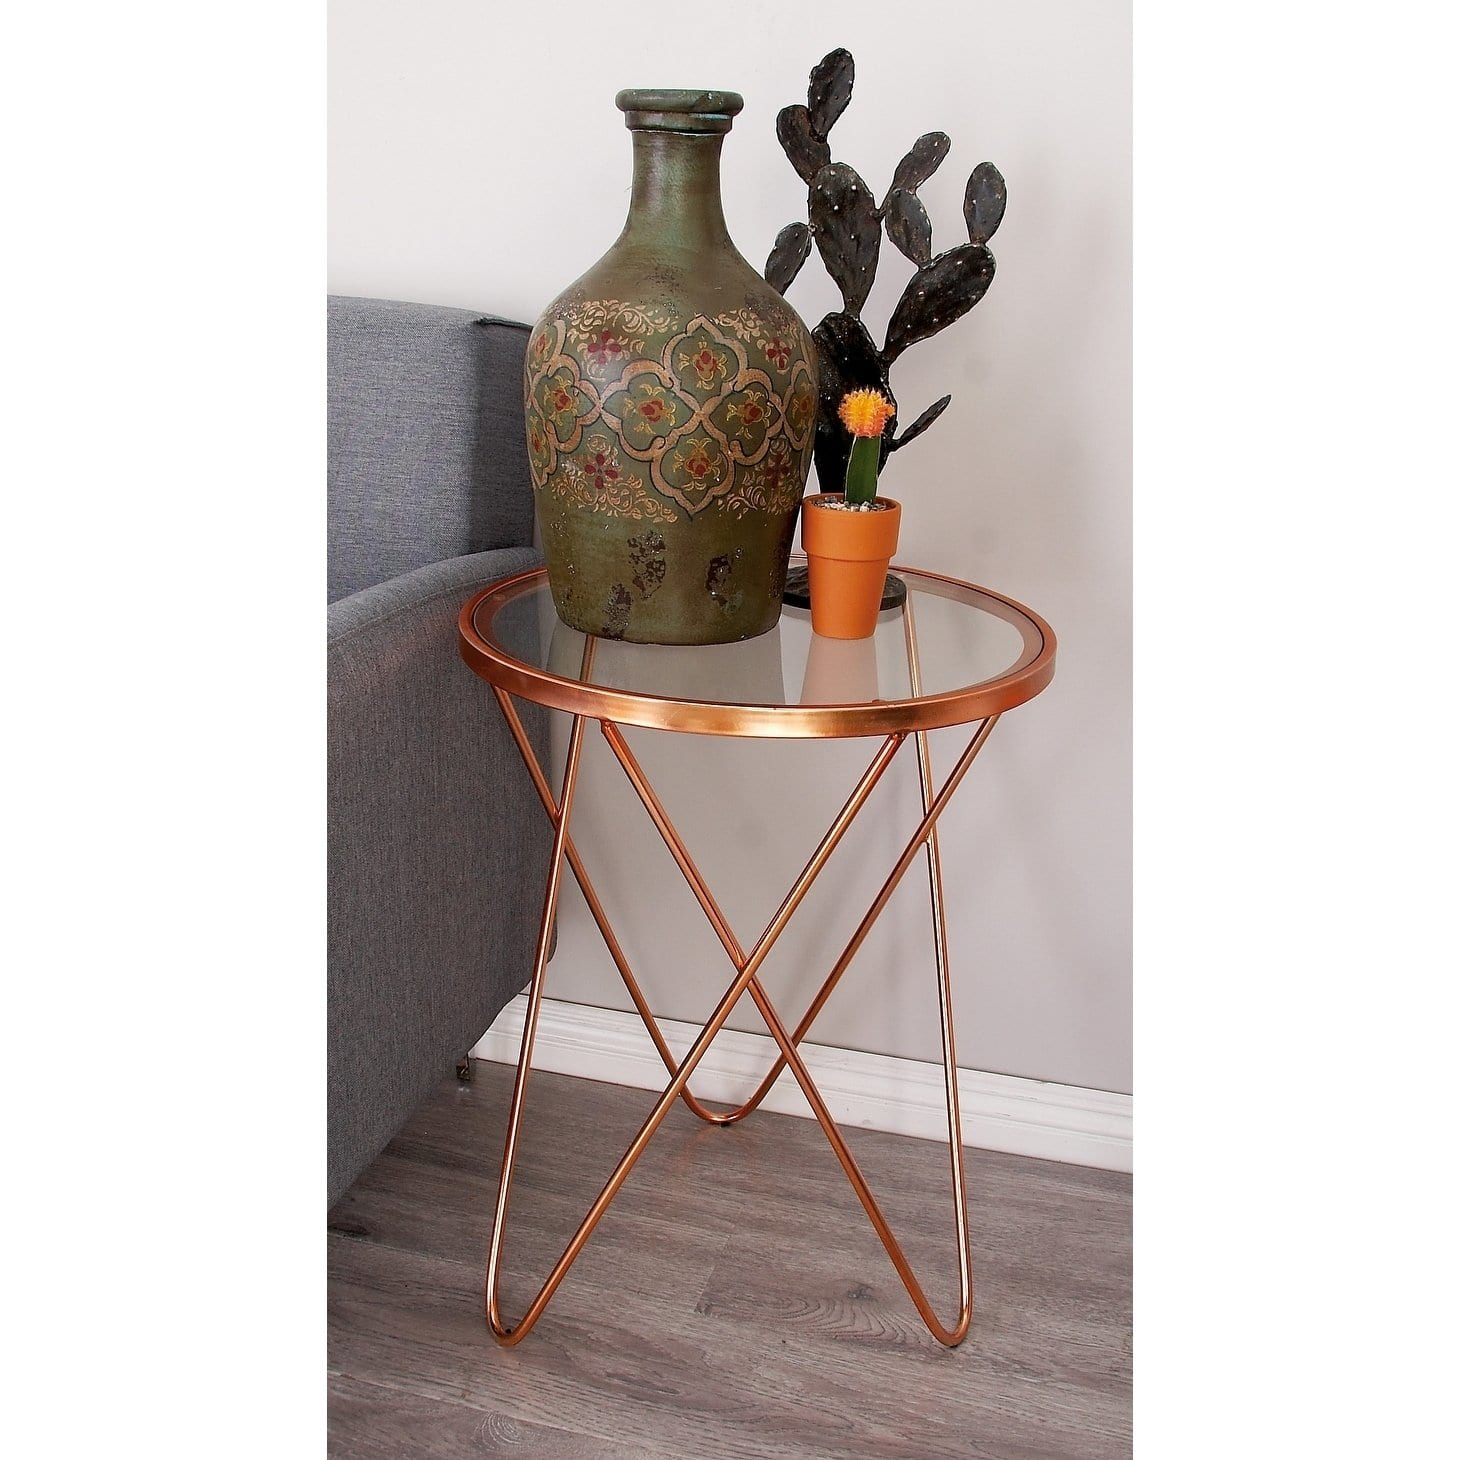 contemporary inch copper glass accent table studio tables free shipping today round coffee set decor small chairs with arms stands pier one furniture coupons west elm clearance